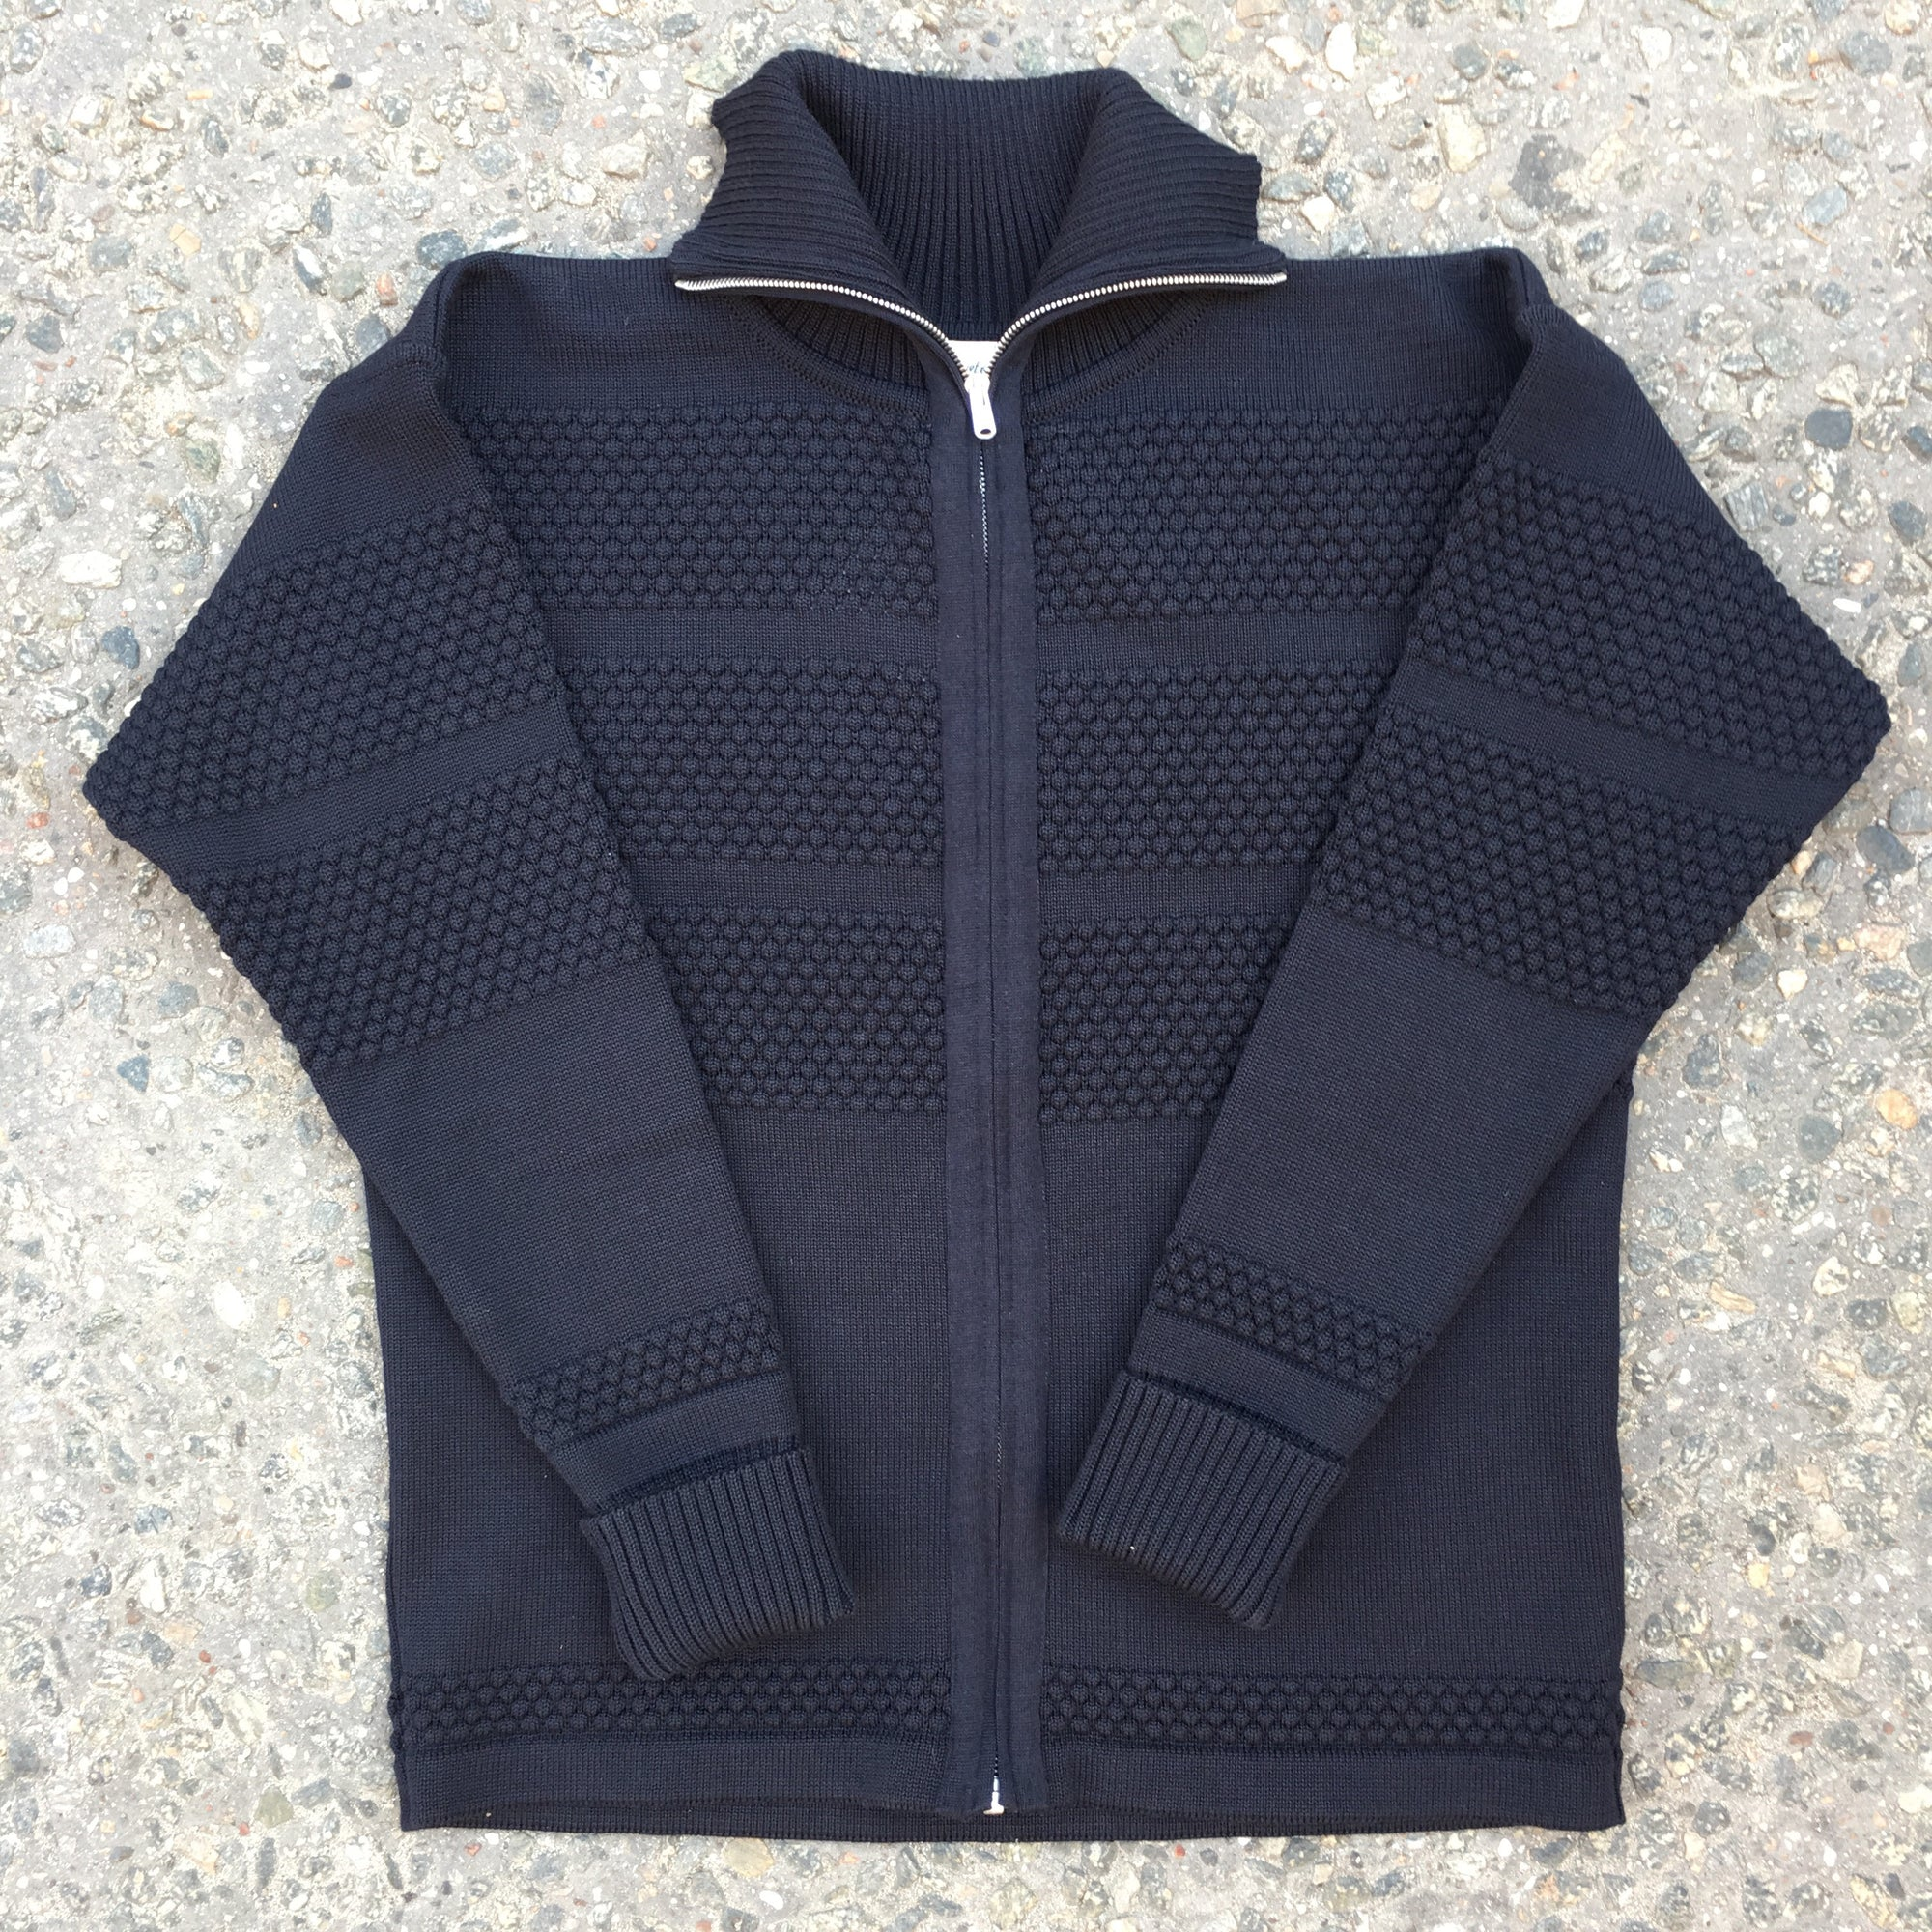 SNS - Fisherman Full zip (Navy blue)